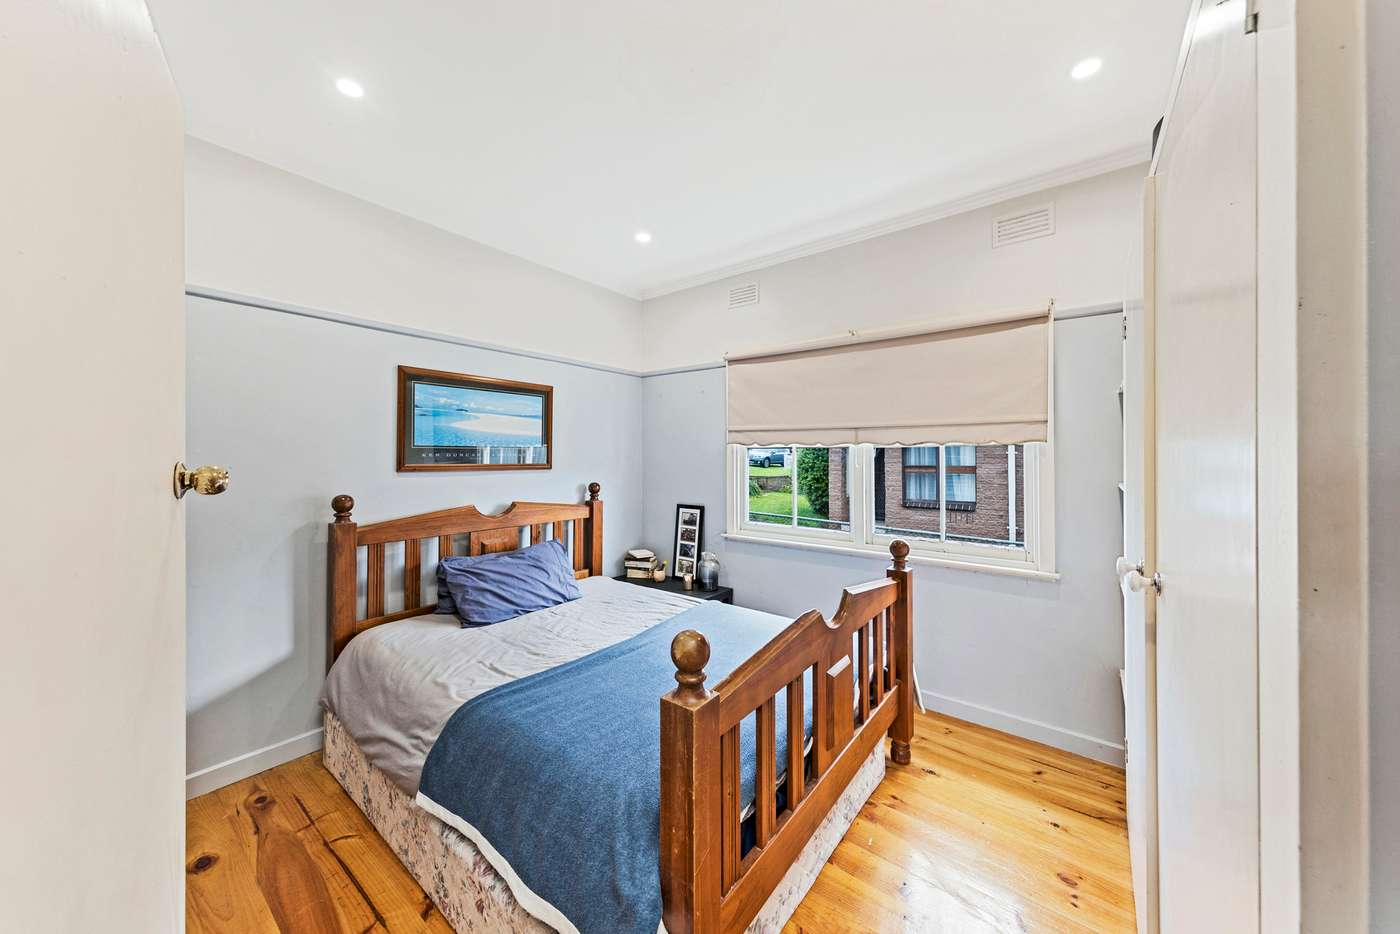 Fifth view of Homely house listing, 1/24 Barkly Street, Warrnambool VIC 3280